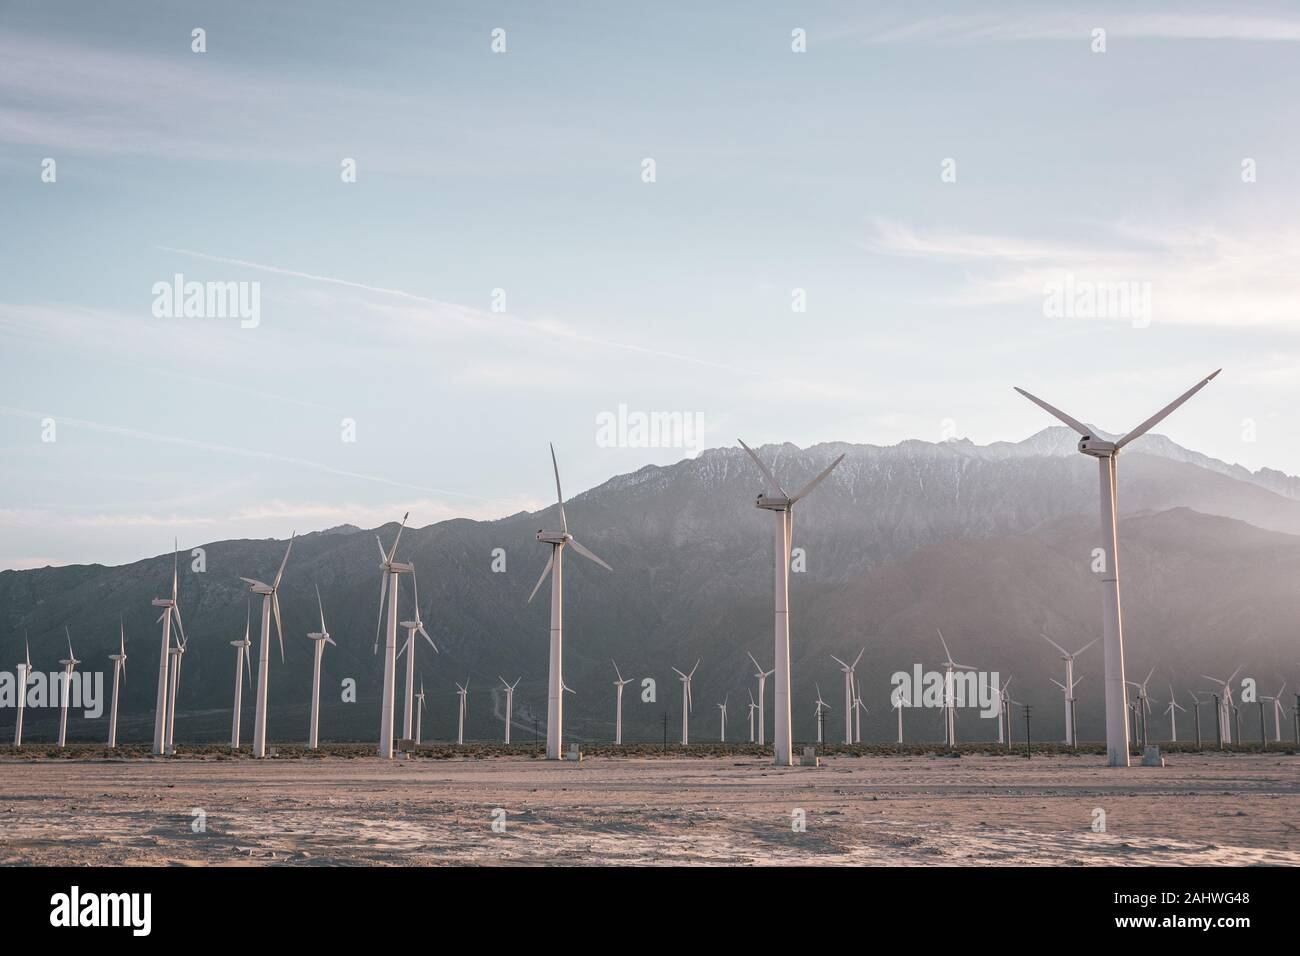 Windmills in Palm Springs, California Stock Photo